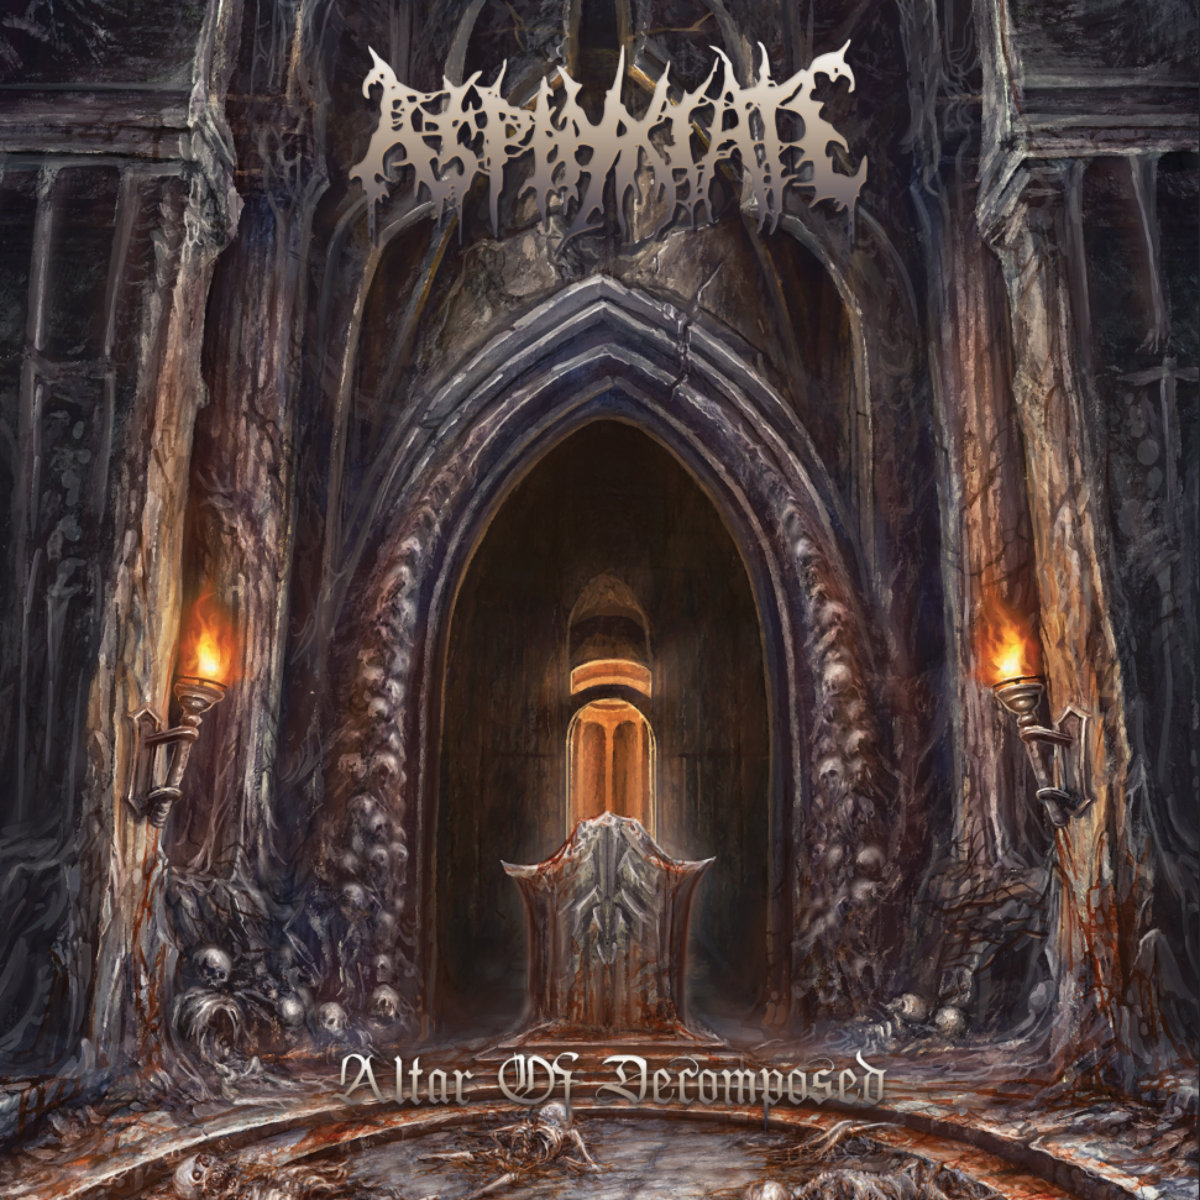 Asphyxiate - Altar of Decomposed (2021) [FLAC] Download